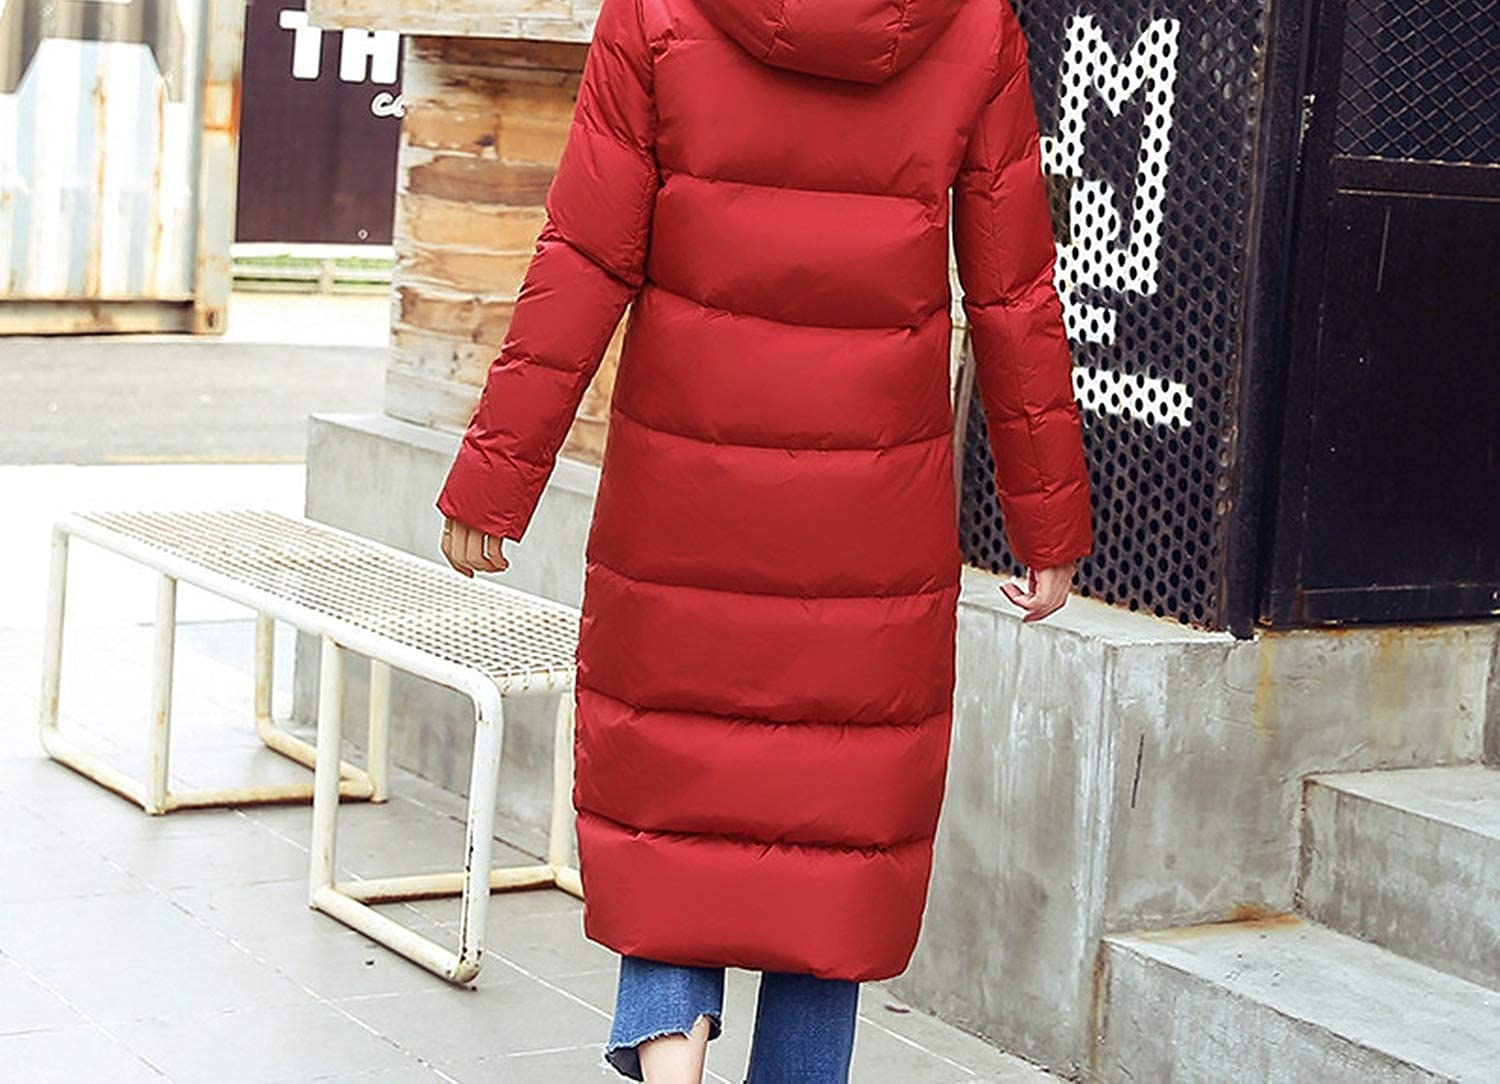 100expectations Winter Coat Warm White Duck Down Jacket Ladies Down Coats Hooded Thick Parka Solid Puffer Outerwear Black L Clothing Coats Jackets Vests